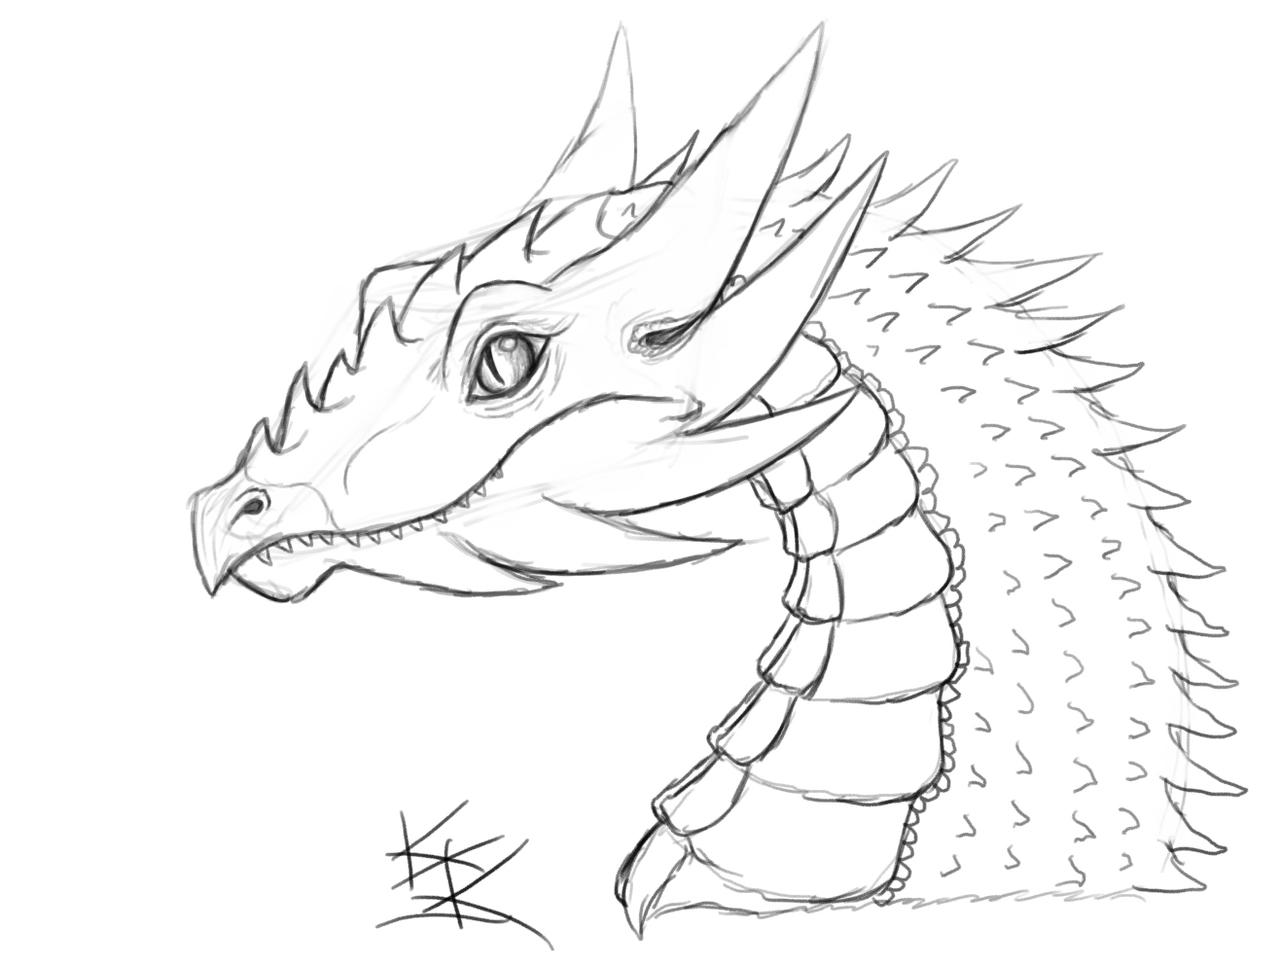 Dragon Sketch by Techdrakonic on DeviantArt